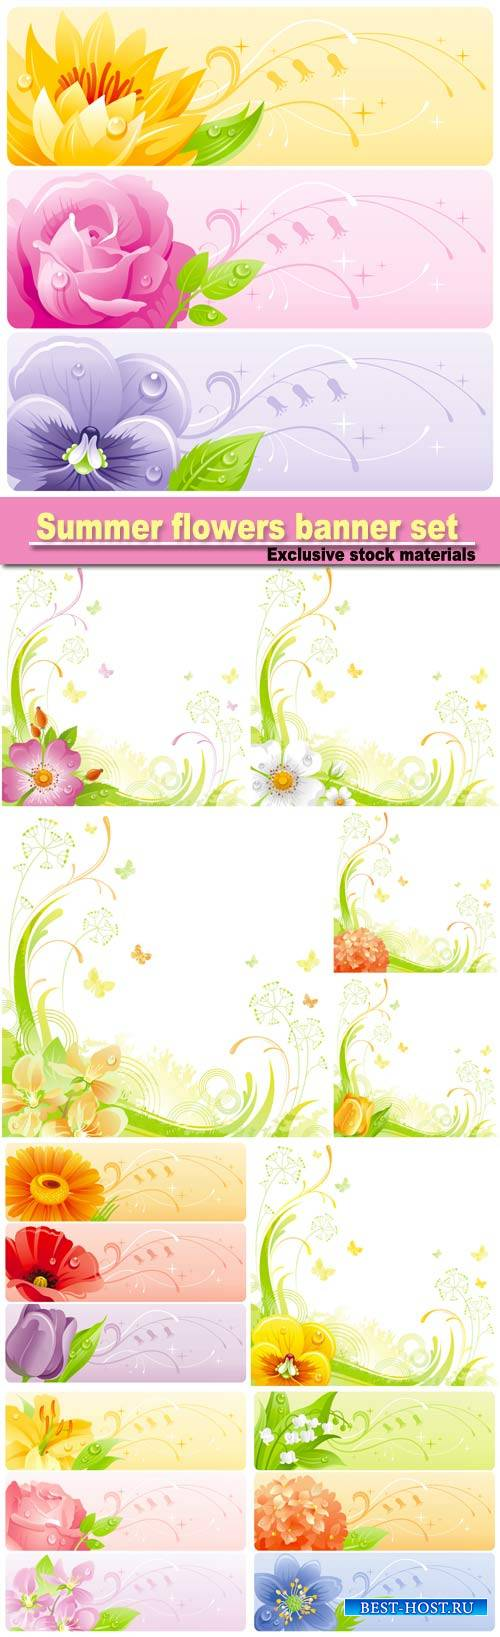 Summer flowers banner set with natural background